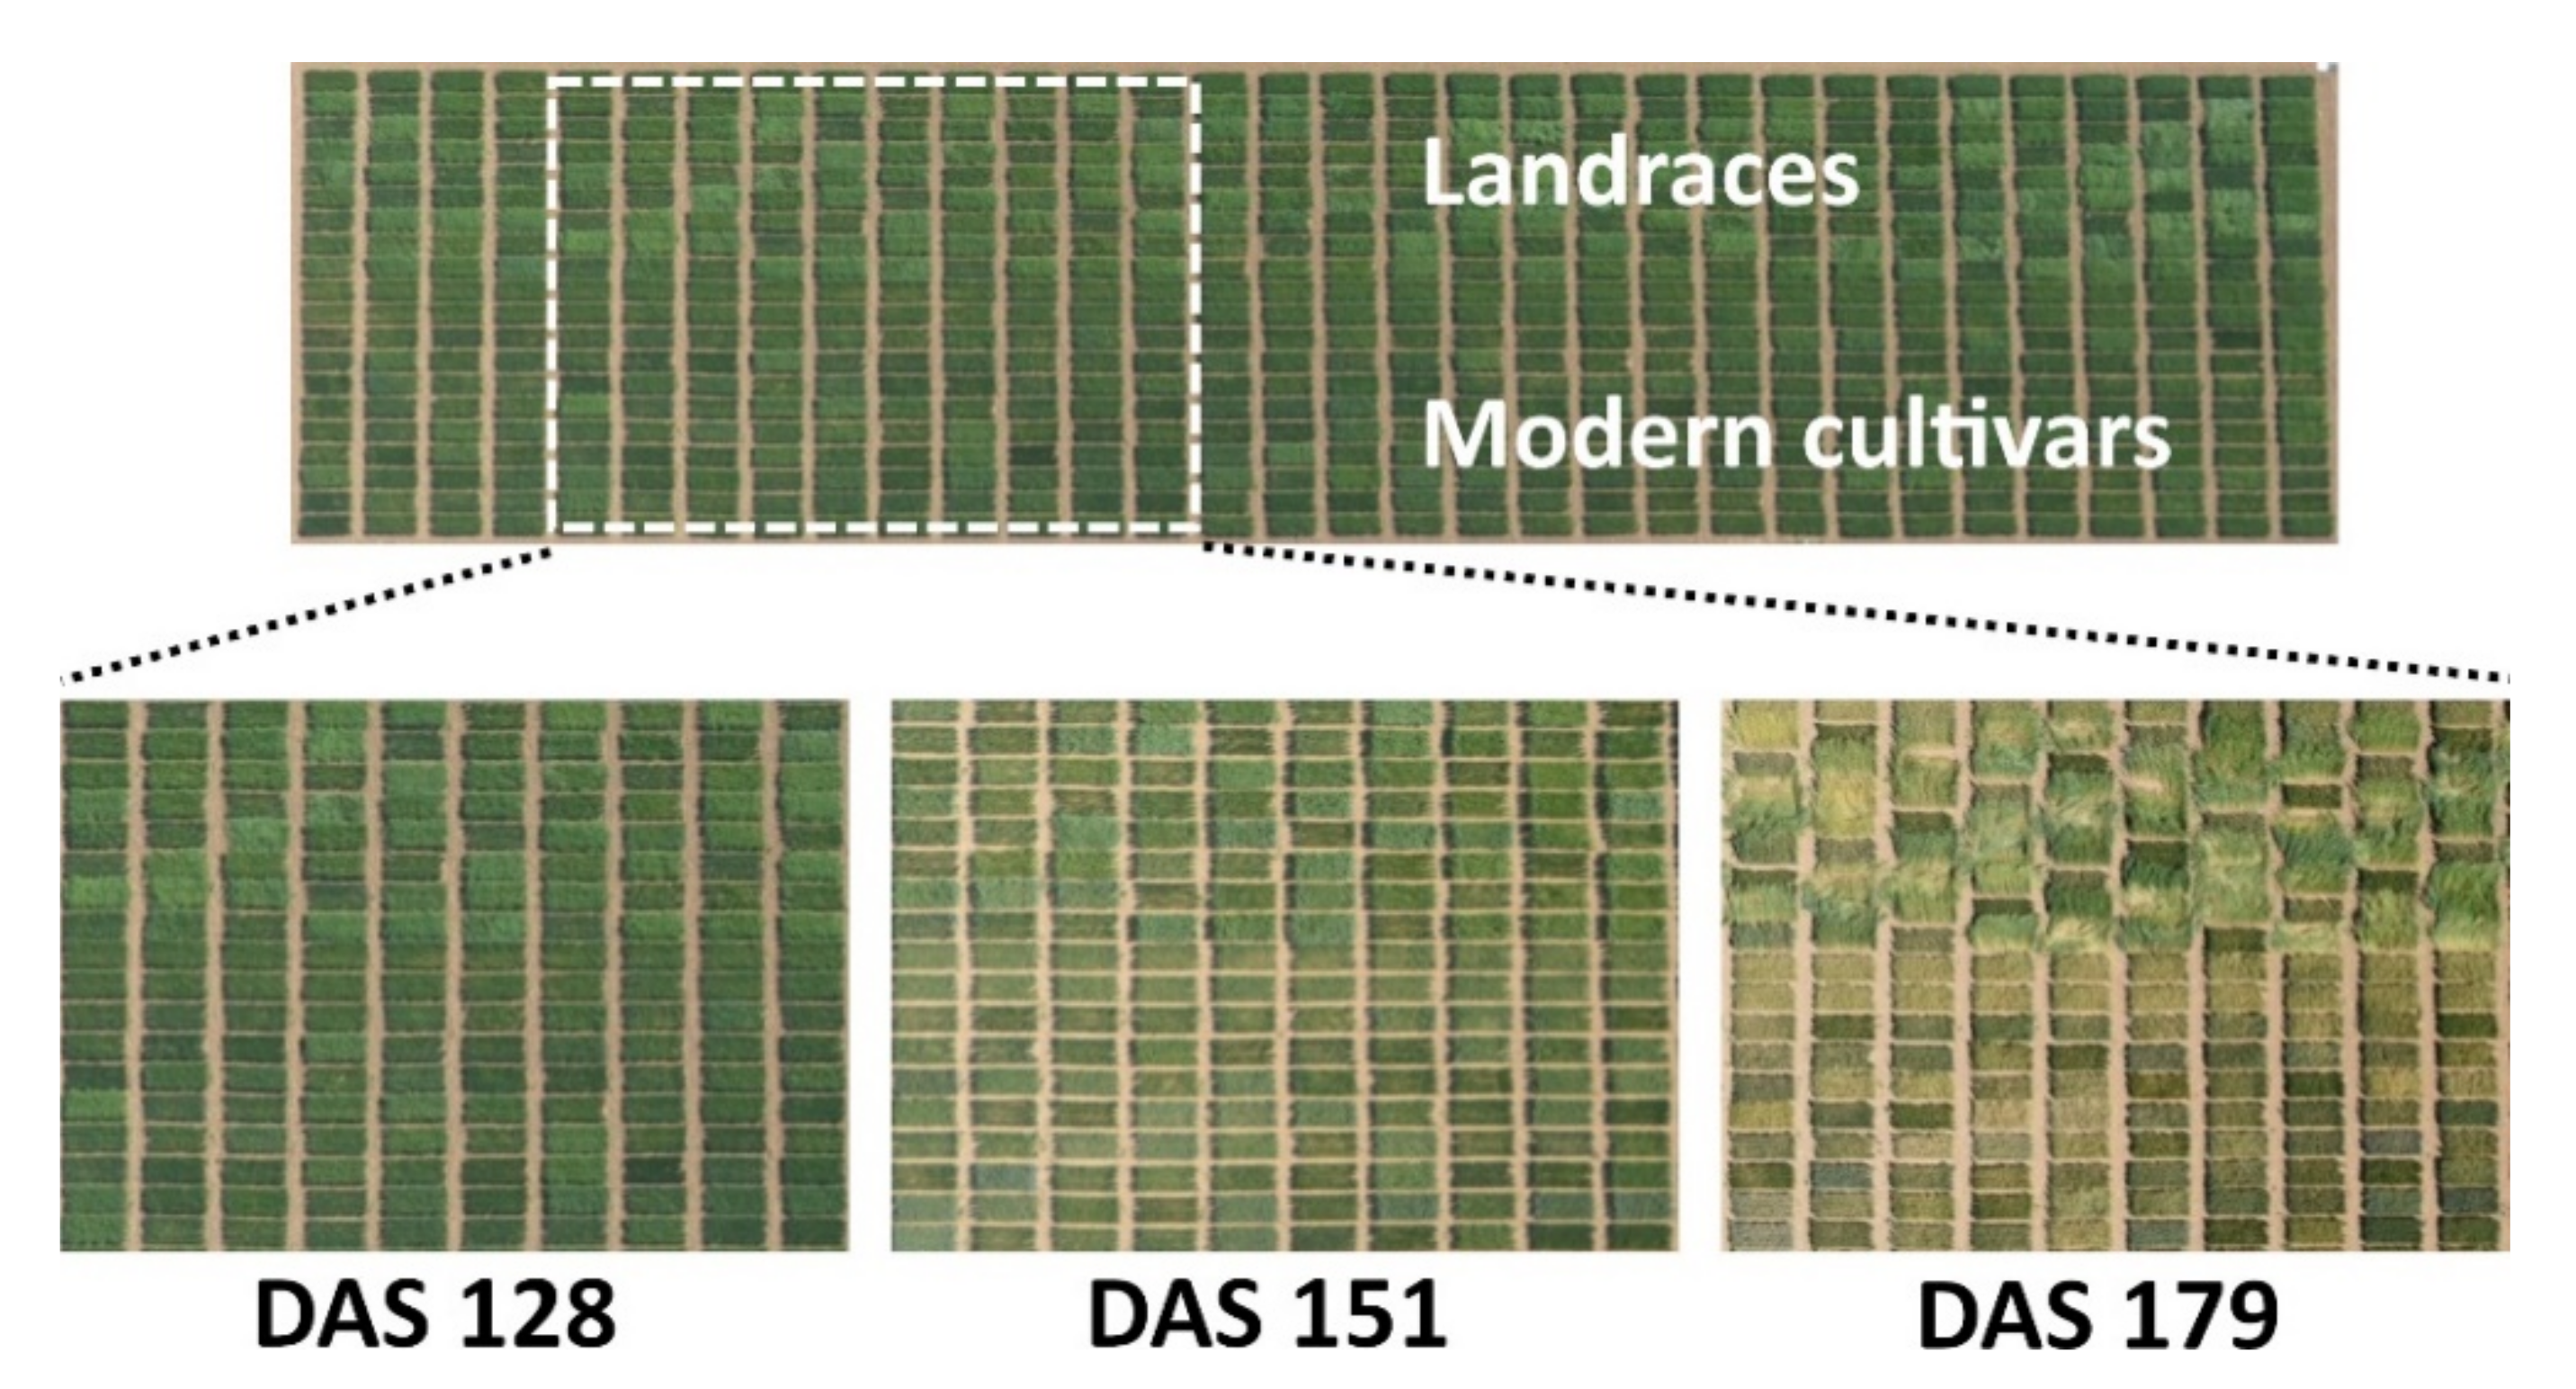 Remote Sensing Free Full Text Using Unmanned Aerial Vehicle And Ground Based Rgb Indices To Assess Agronomic Performance Of Wheat Landraces And Cultivars In A Mediterranean Type Environment Html